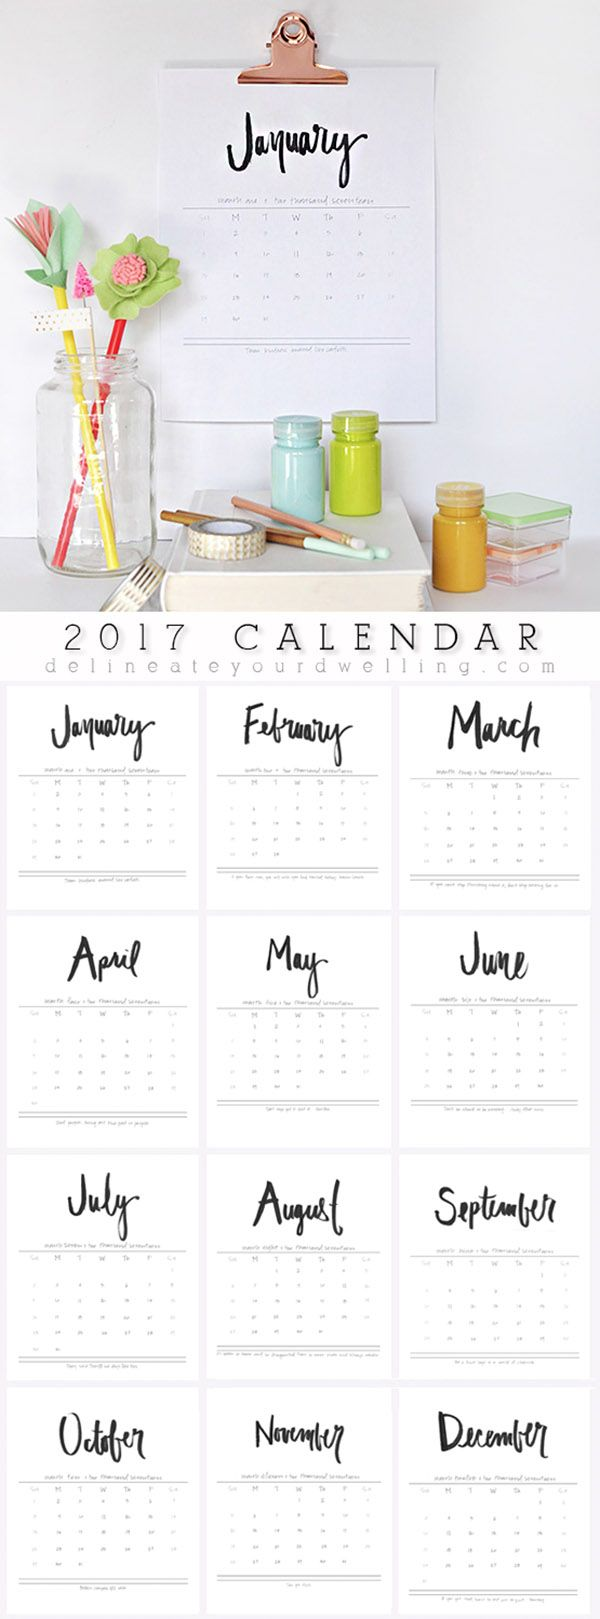 Resize for project life title cards. Source: 2017 Hand Lettered Calendar – Delineate Your Dwelling